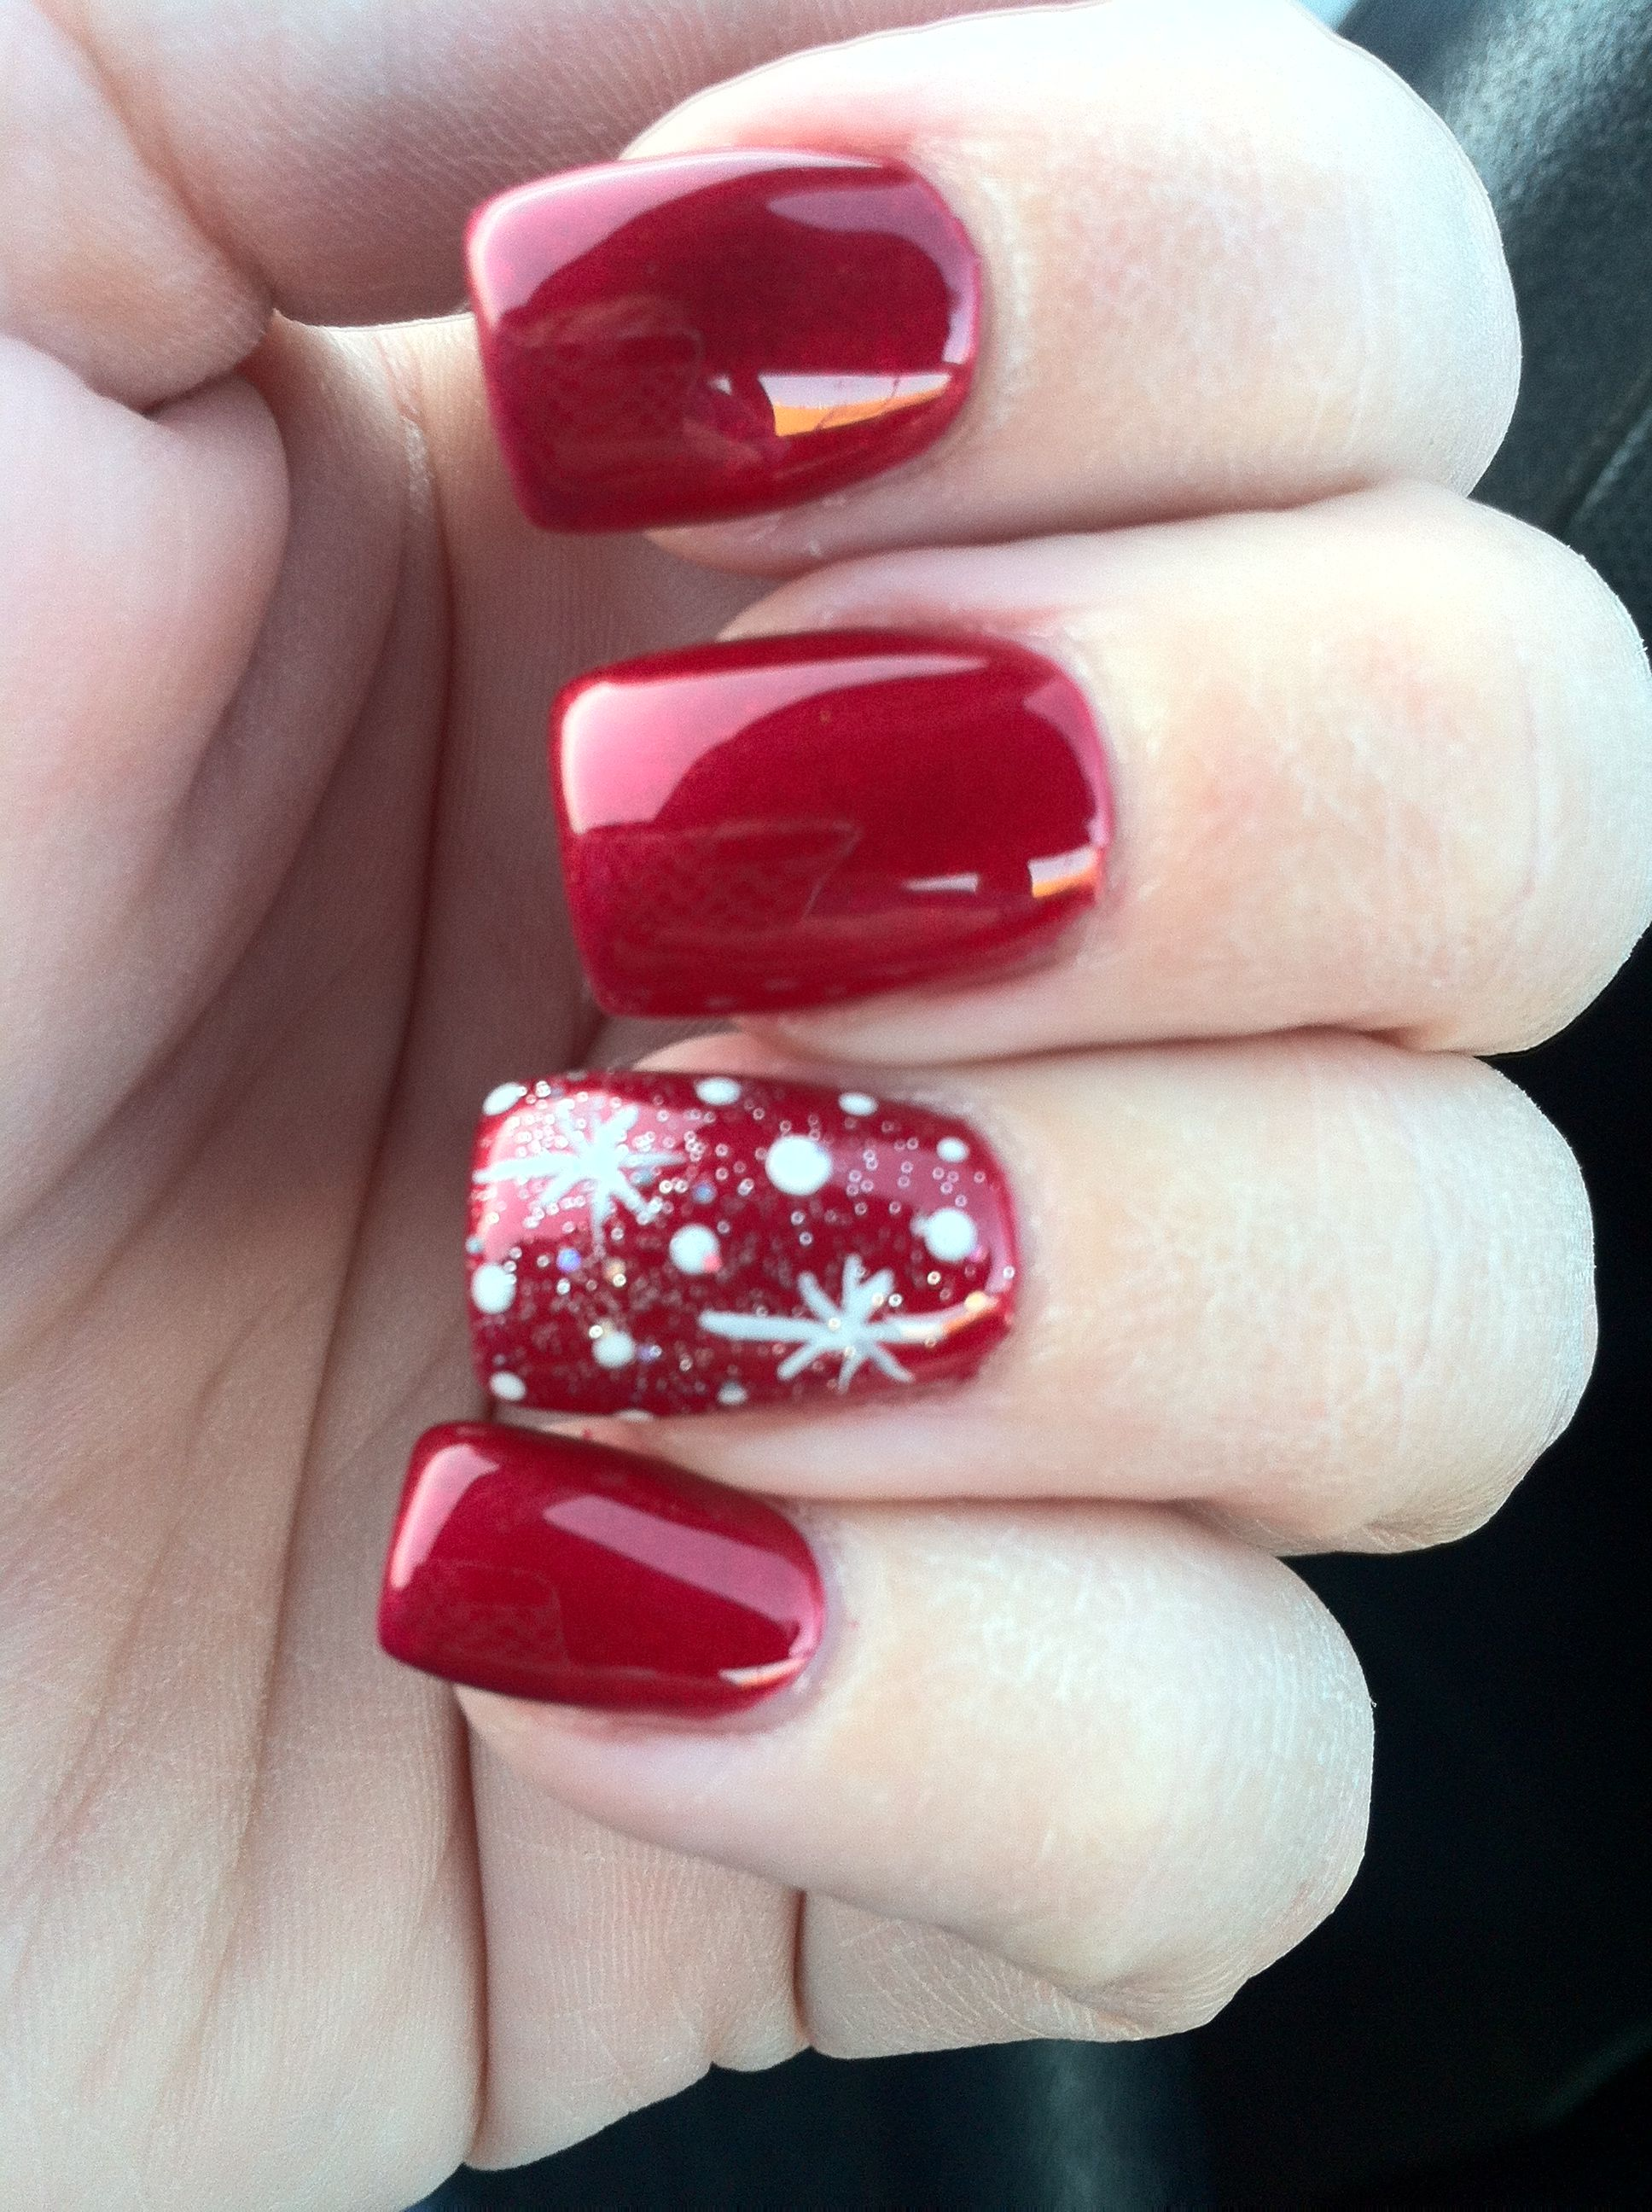 Snowflake Design On Red Nails Nail Art I Would Do Blue Instead Of